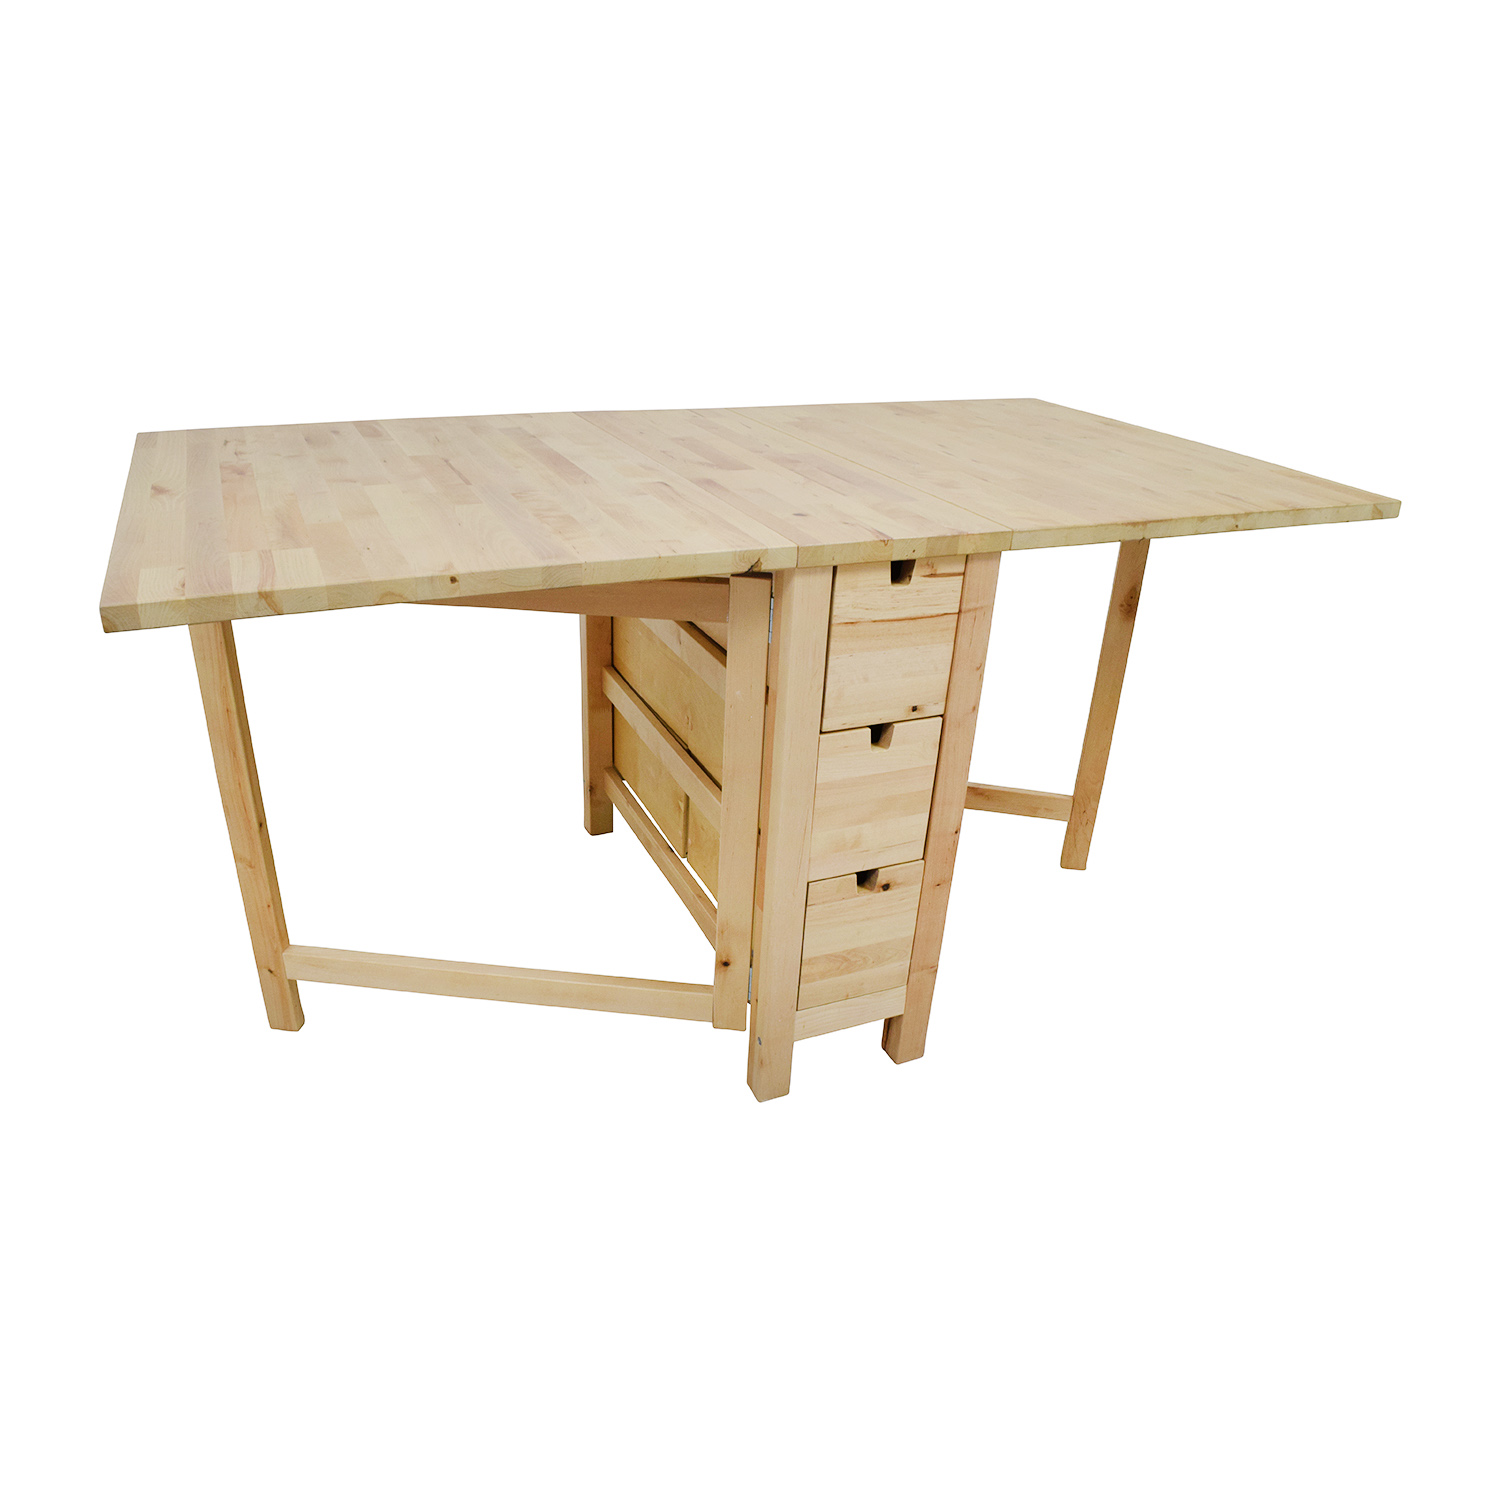 49 off ikea ikea birch norden gateleg drop leaf table with drawers tables - Table ikea norden ...